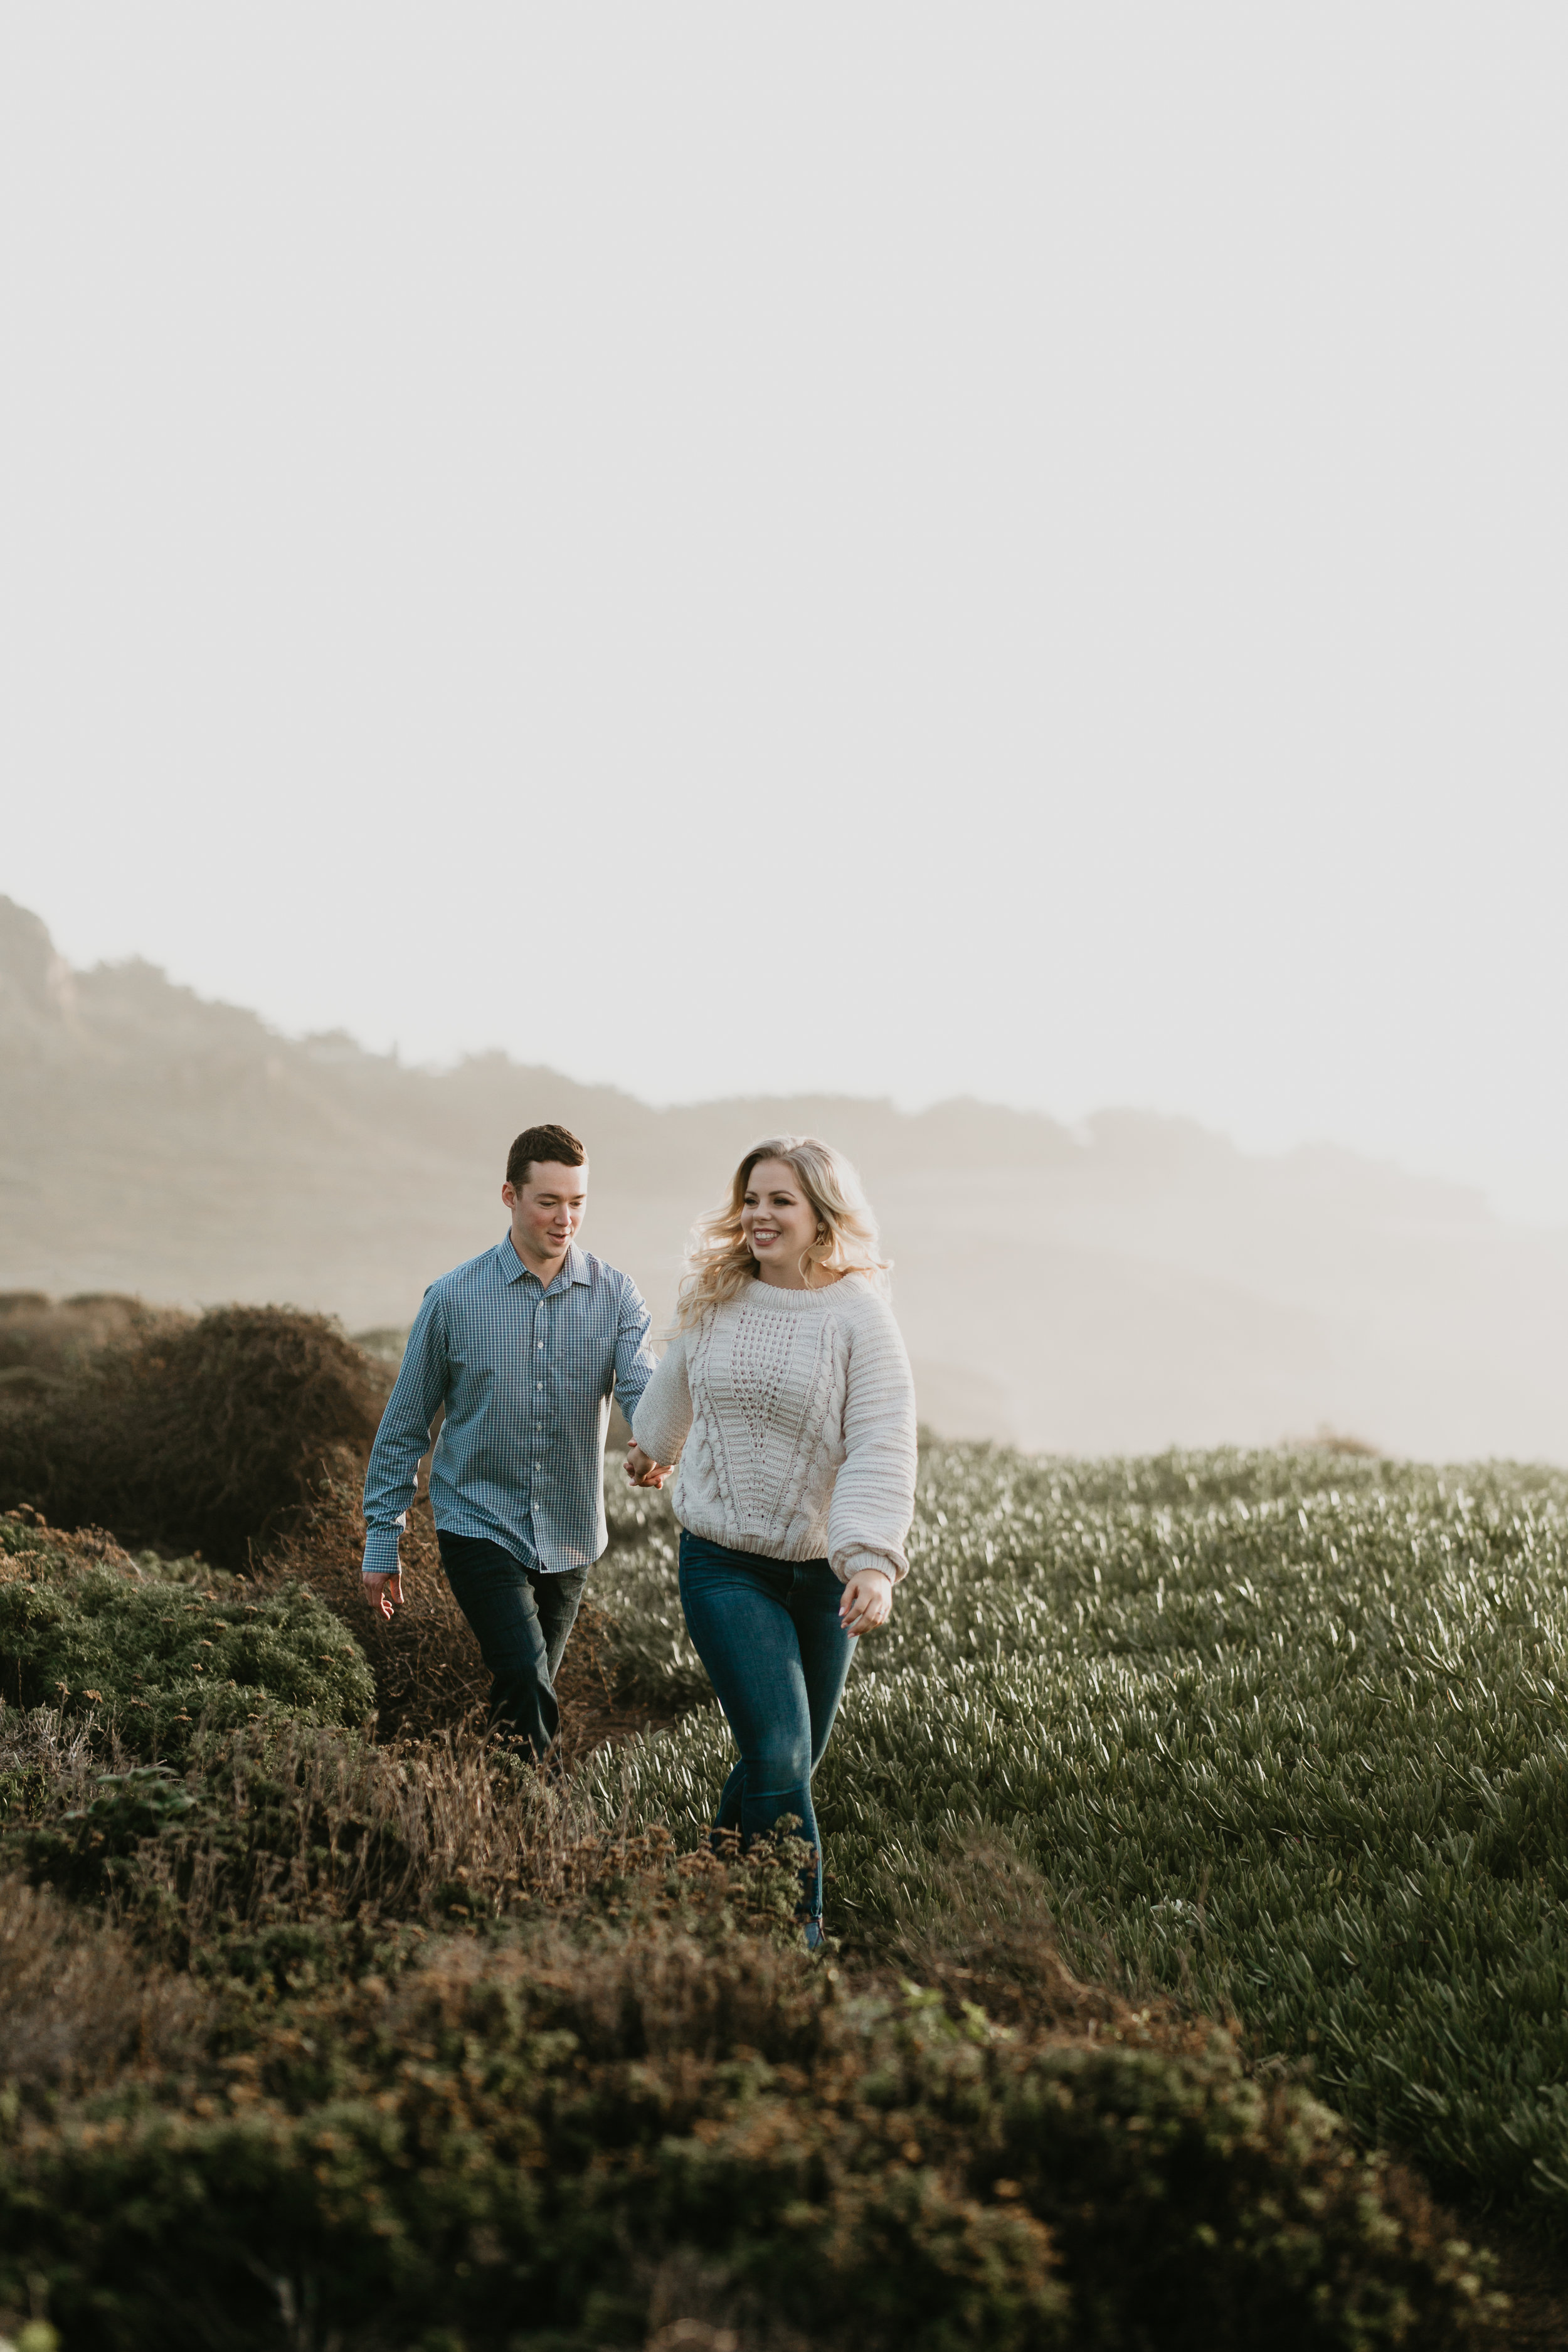 Nicole-Daacke-Photography-big-sur-garrapatta-state-park-adventurous-engagement-session-bixy-bridge-elopement-big-sur-wedding-photographer-monterey-elopement-photographer-california-golden-sunset-coast-photos-17.jpg